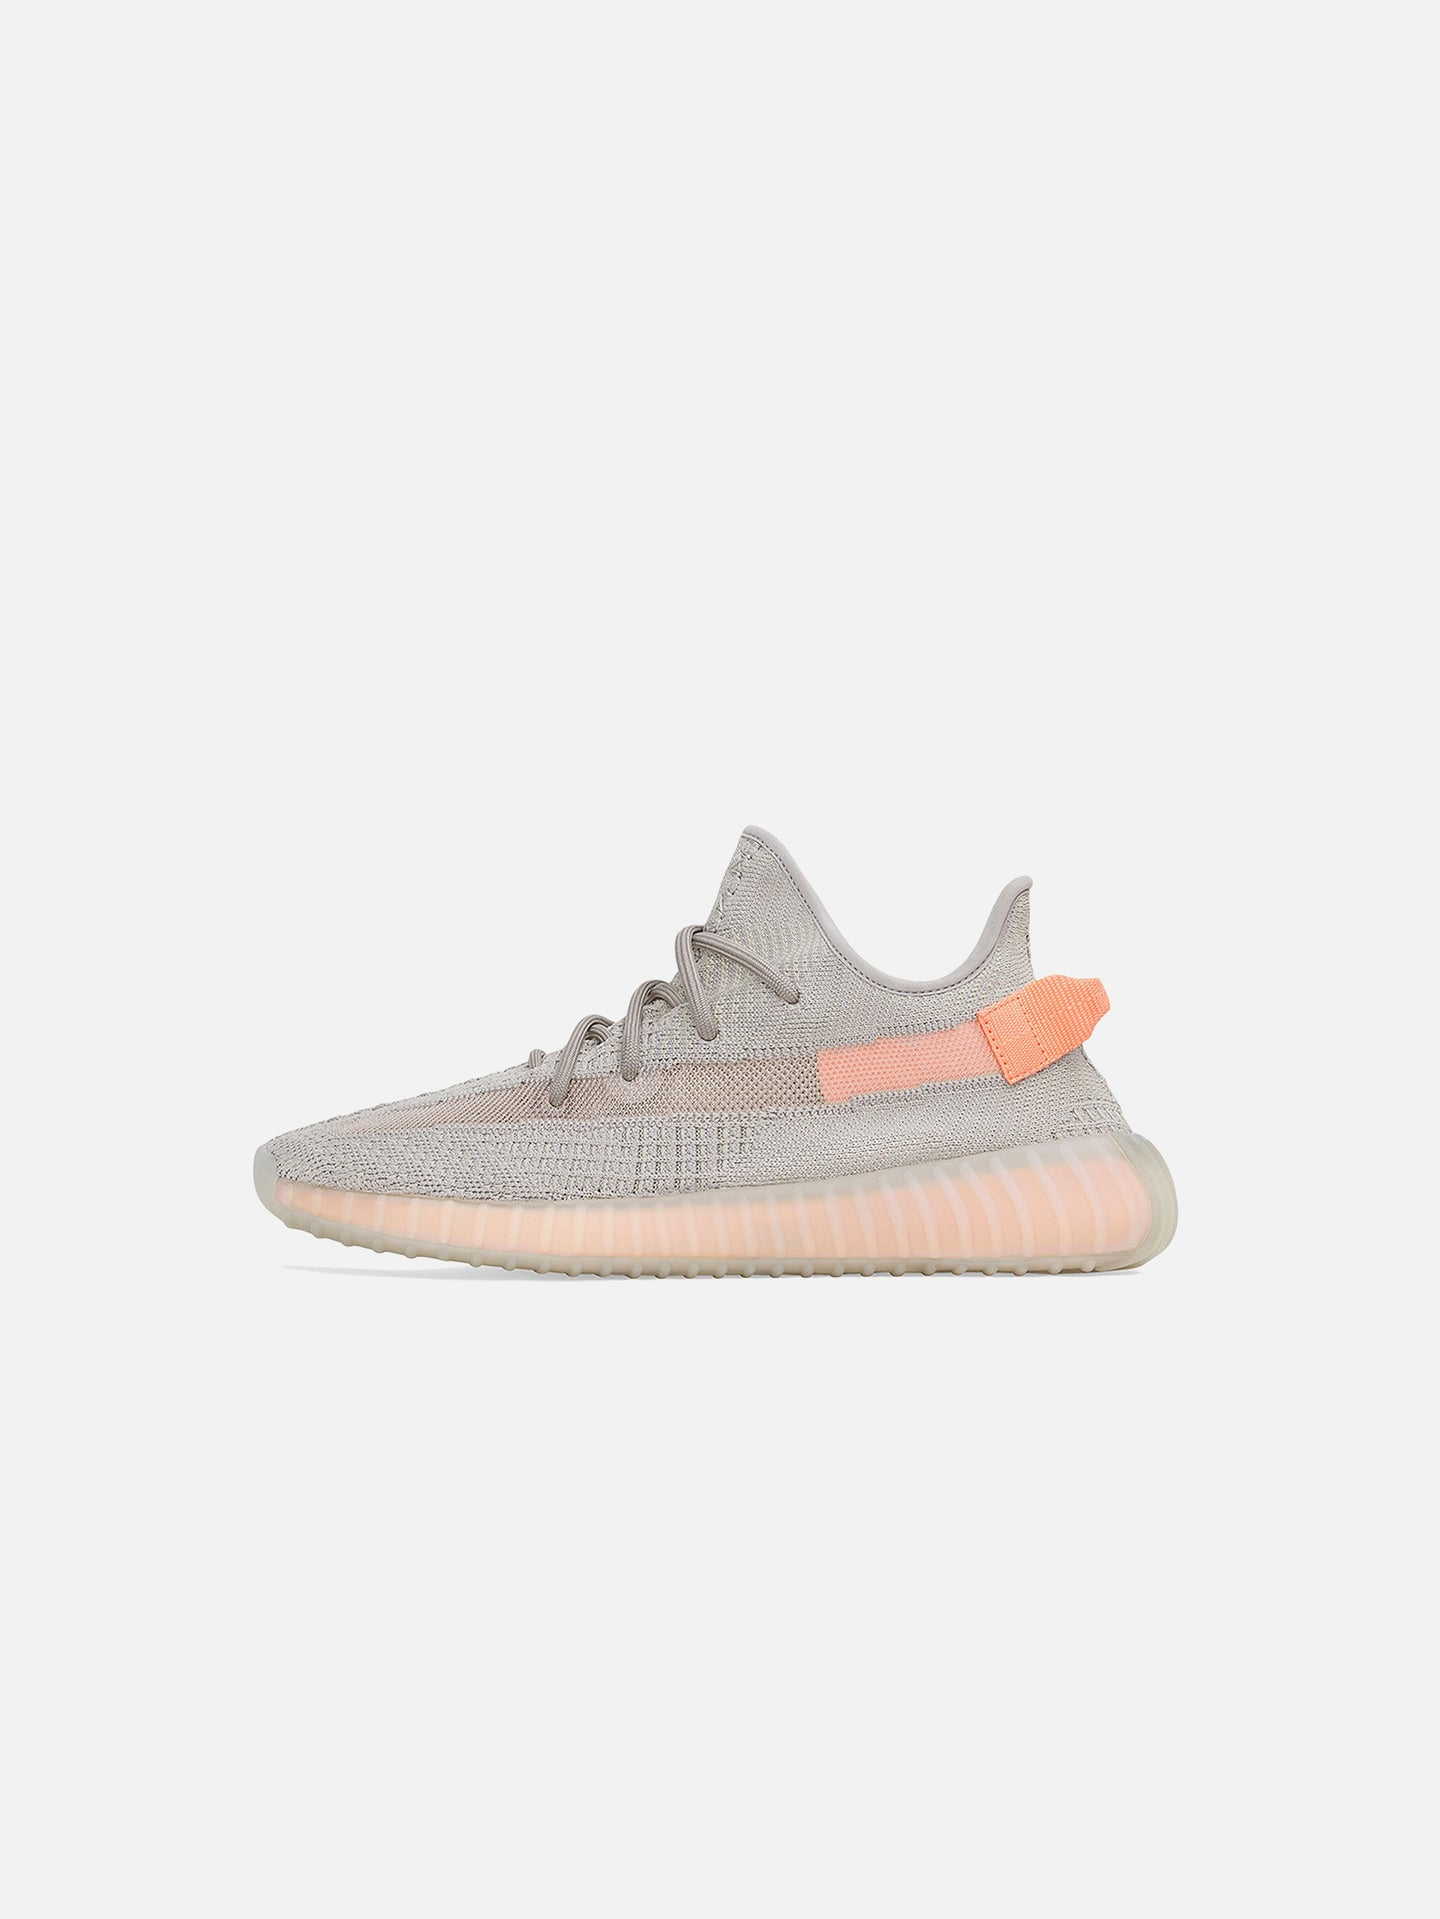 YEEZY BOOST 350 V2: TRFRM